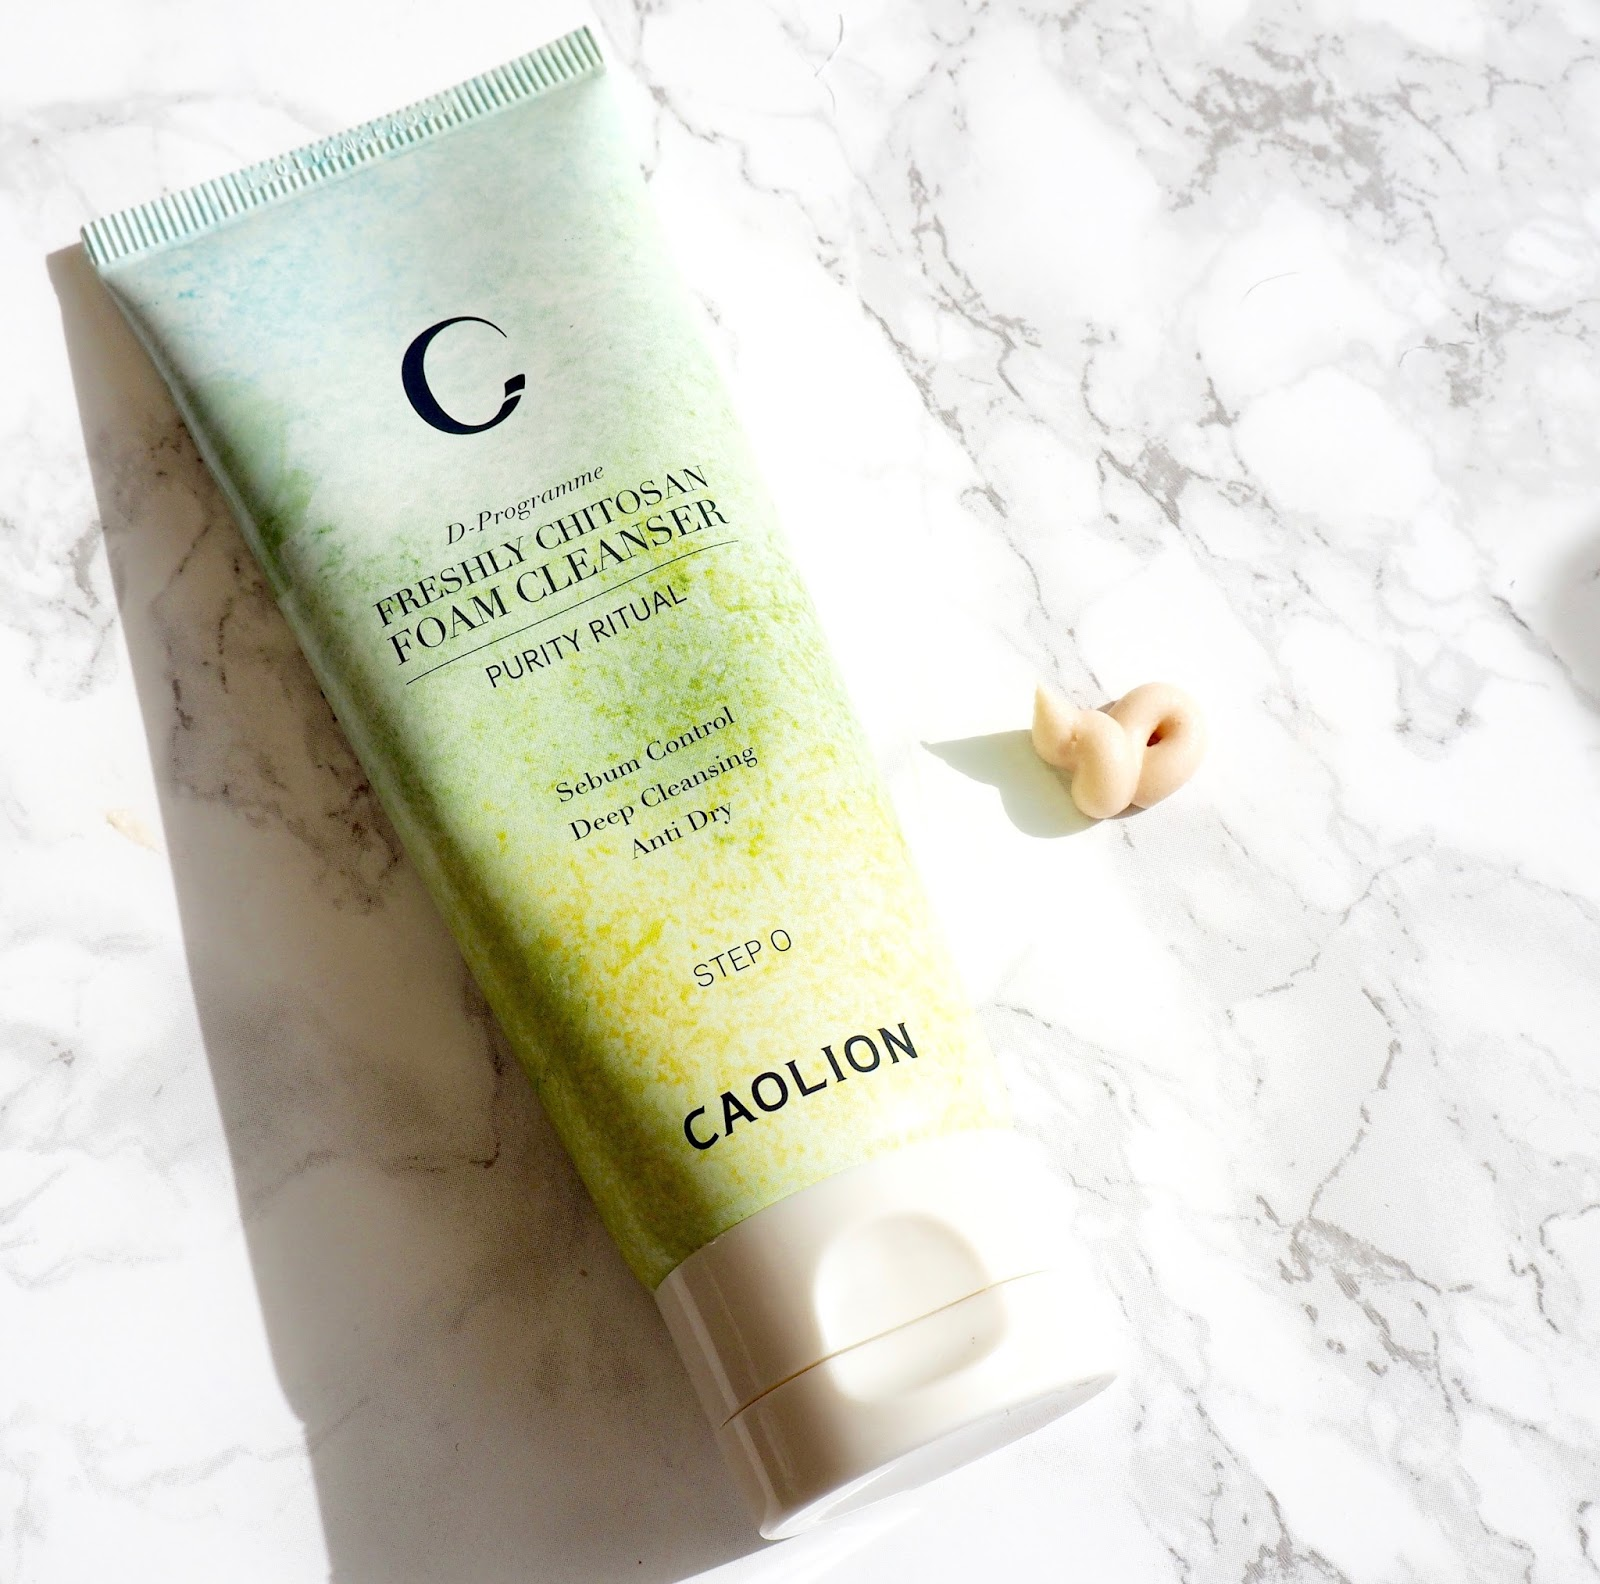 PORE PAMPERING WITH CAOLION X PEACH & LILY'S PERFECT PORES KIT